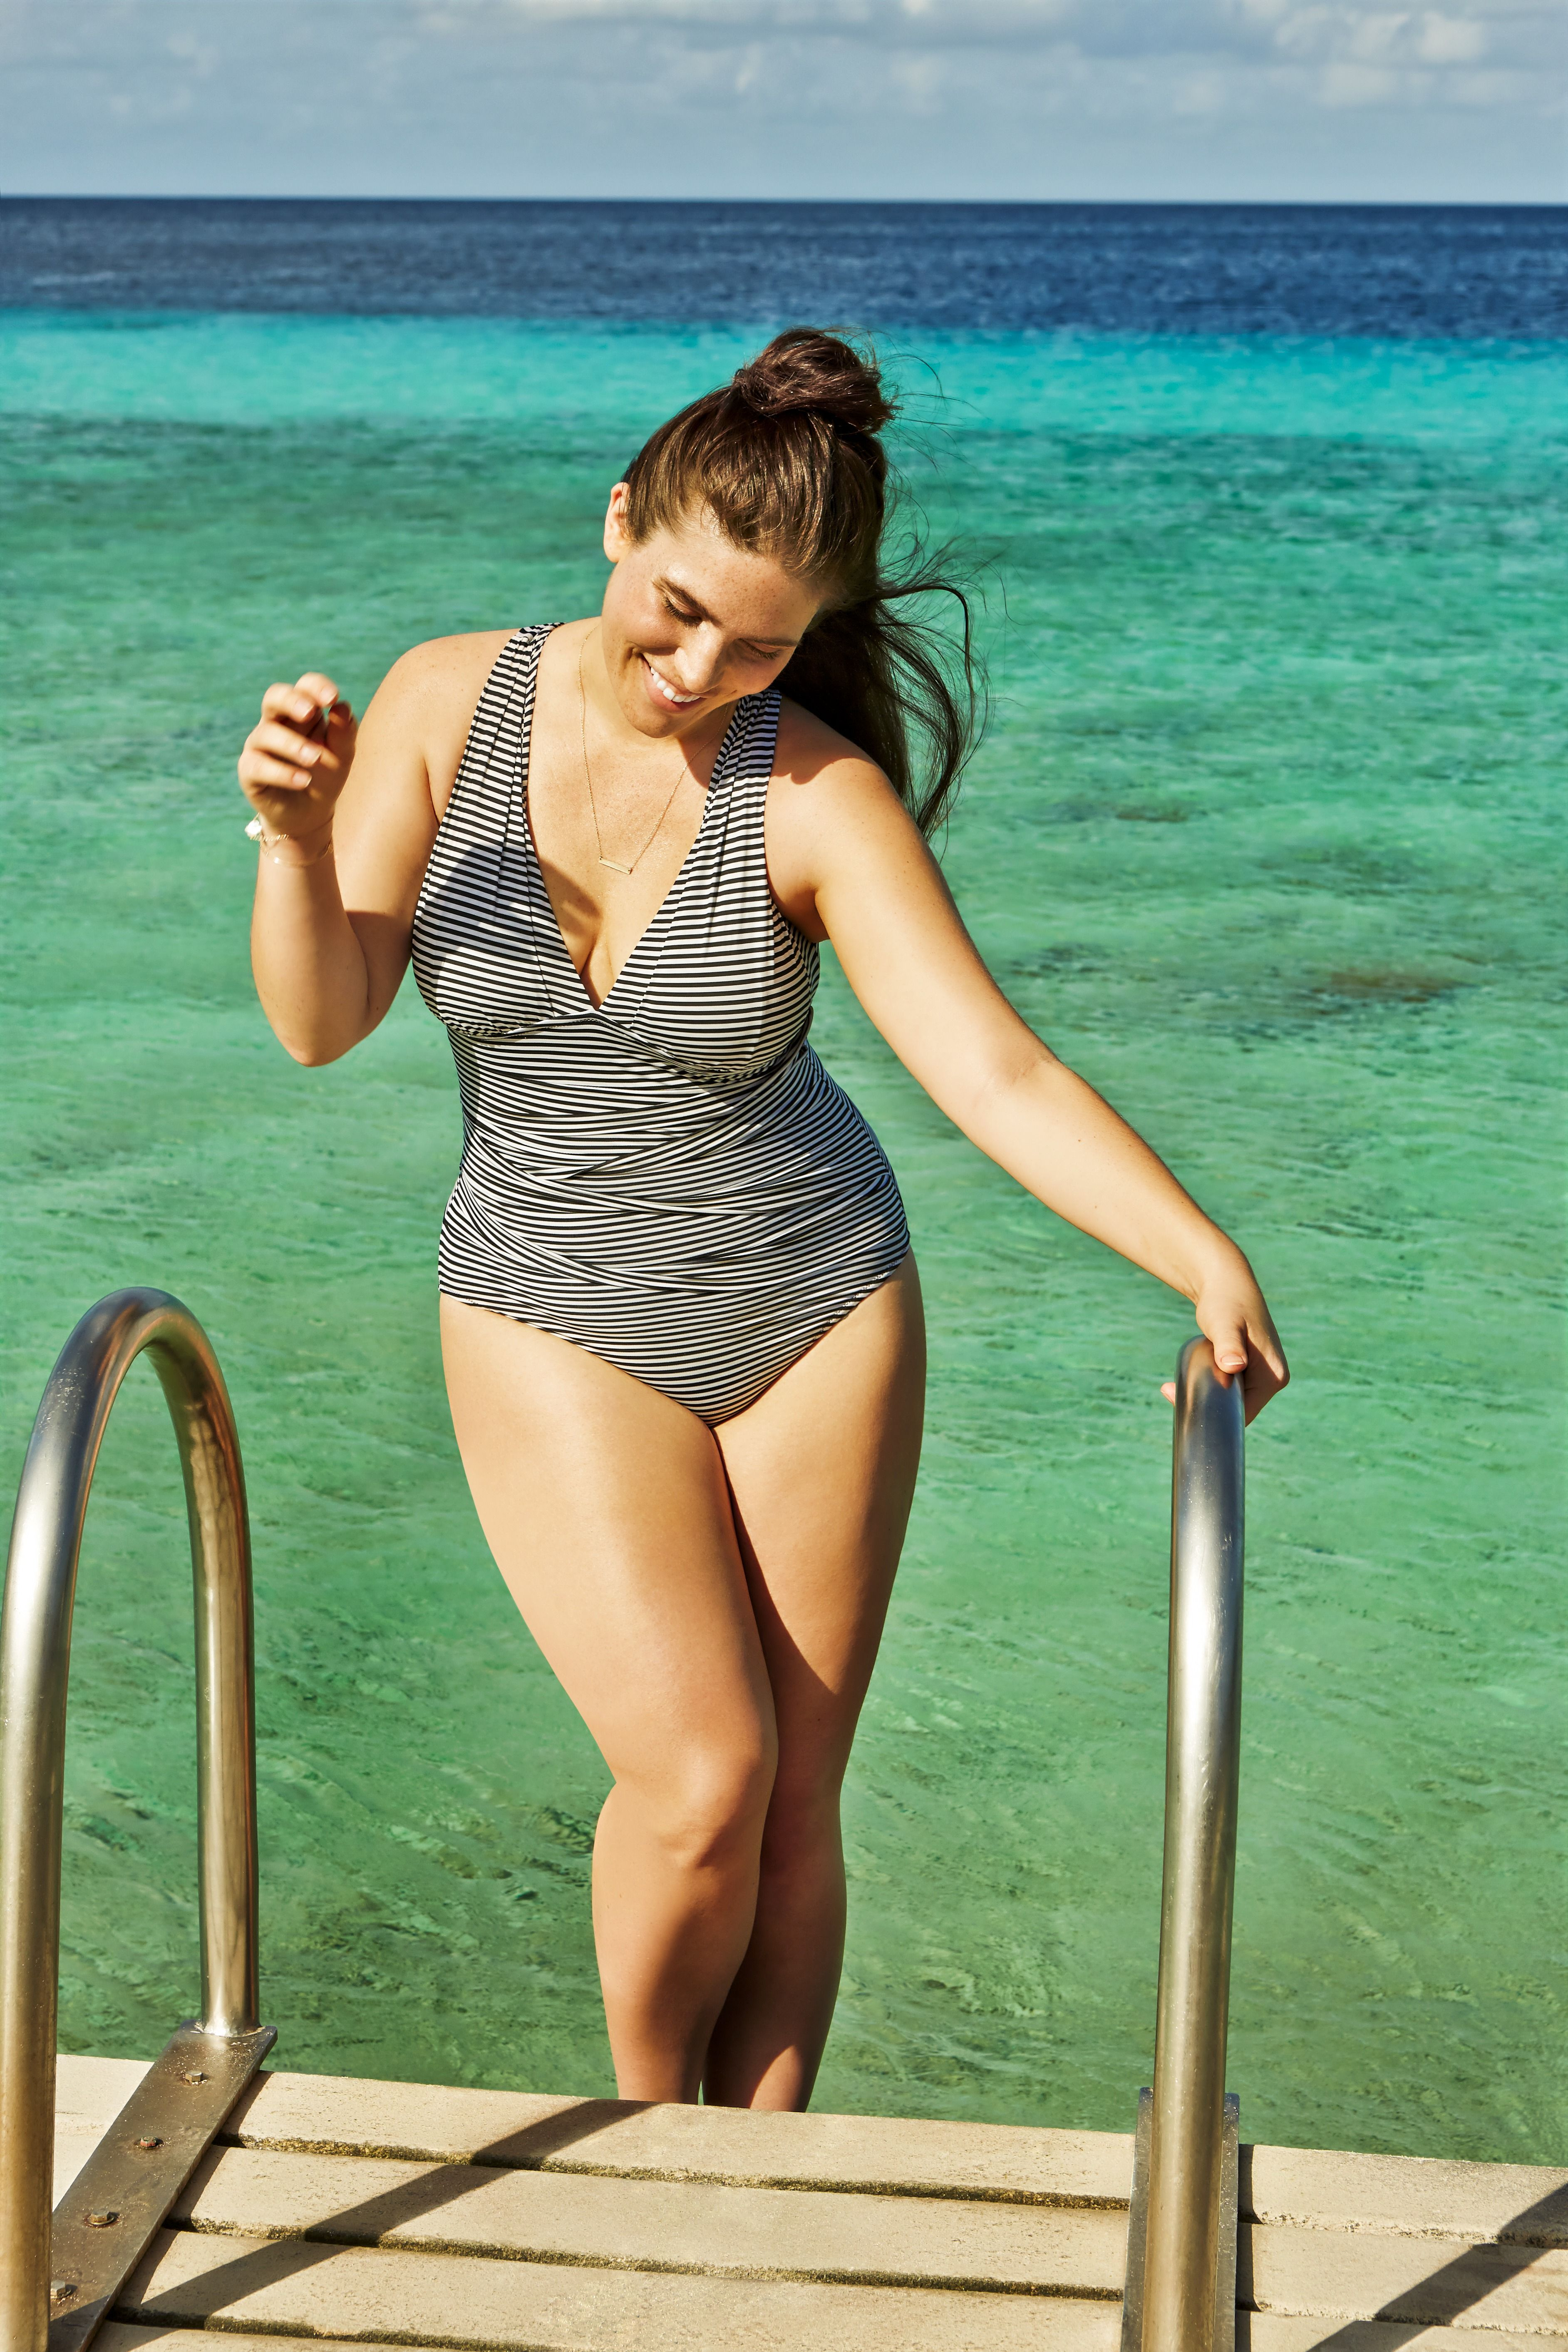 f108ef32b5 16 Swimsuits That Actually Flatter Your Body Shape - Best Swimsuits ...